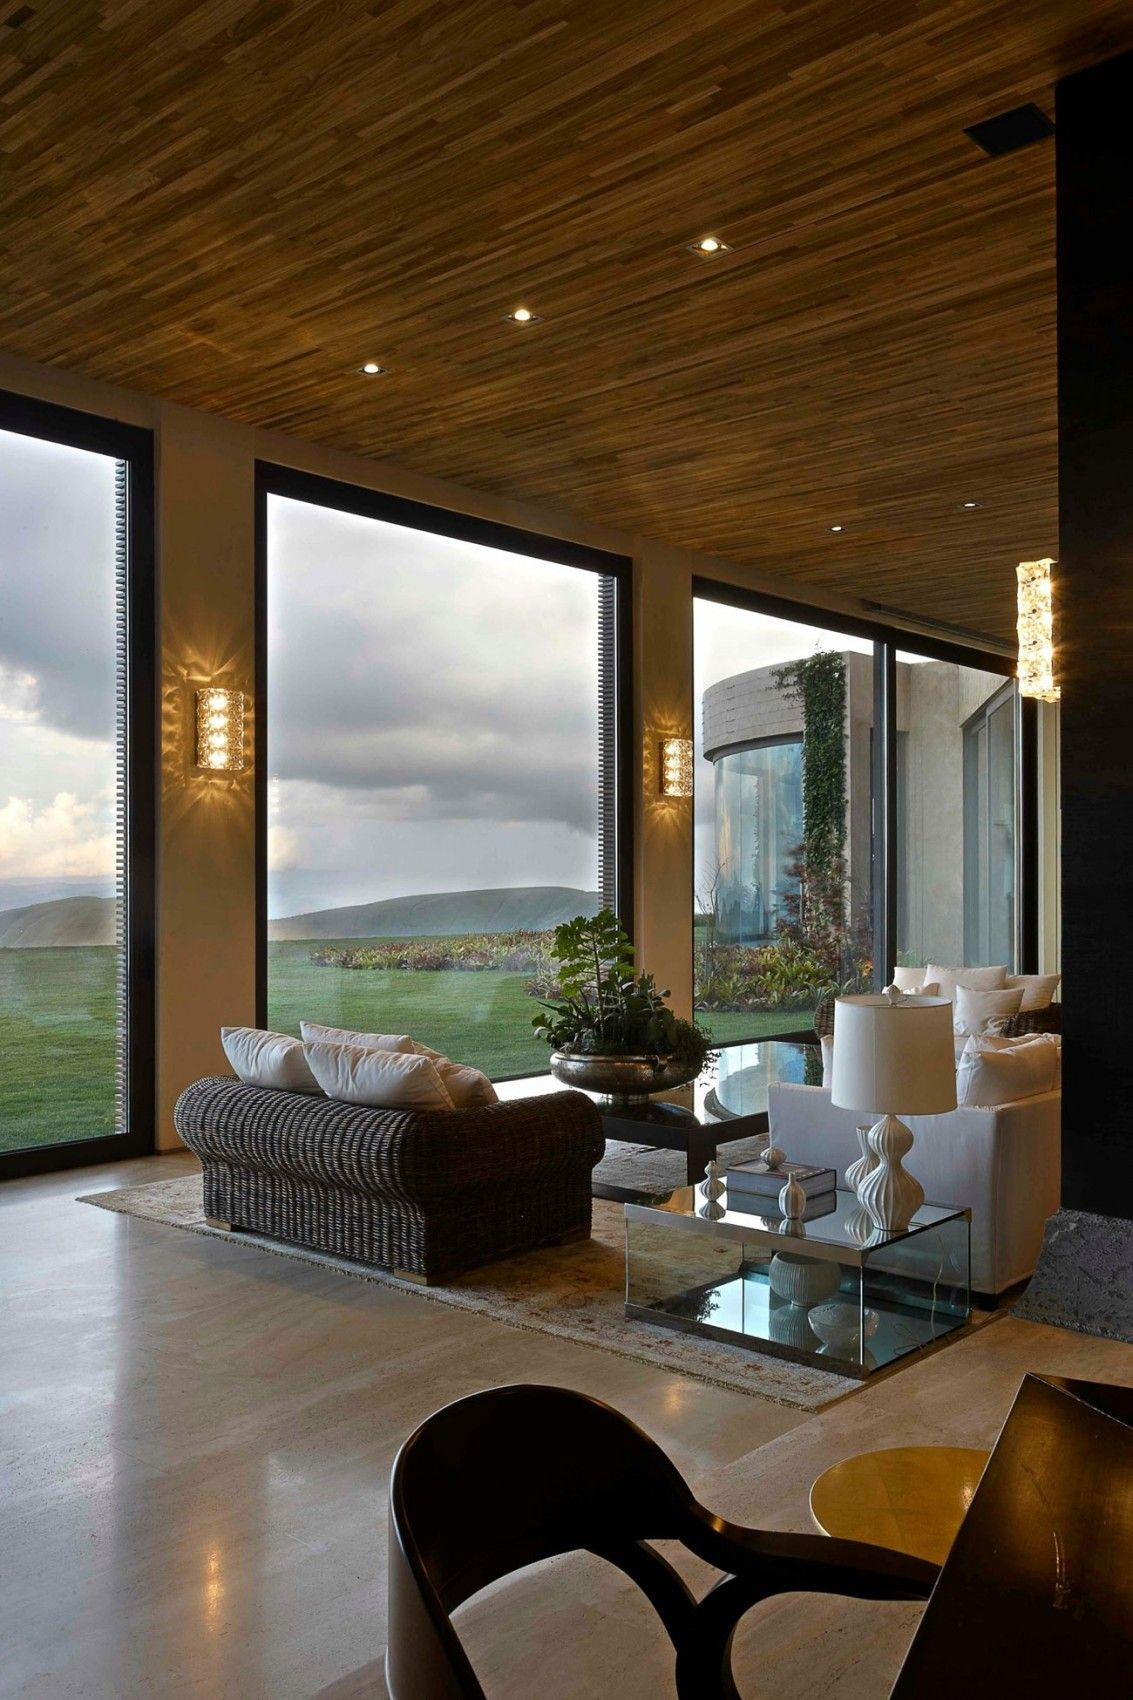 House with Big Windows Lovely sophisticated Rustic Feel Impressive Wood and Stone House